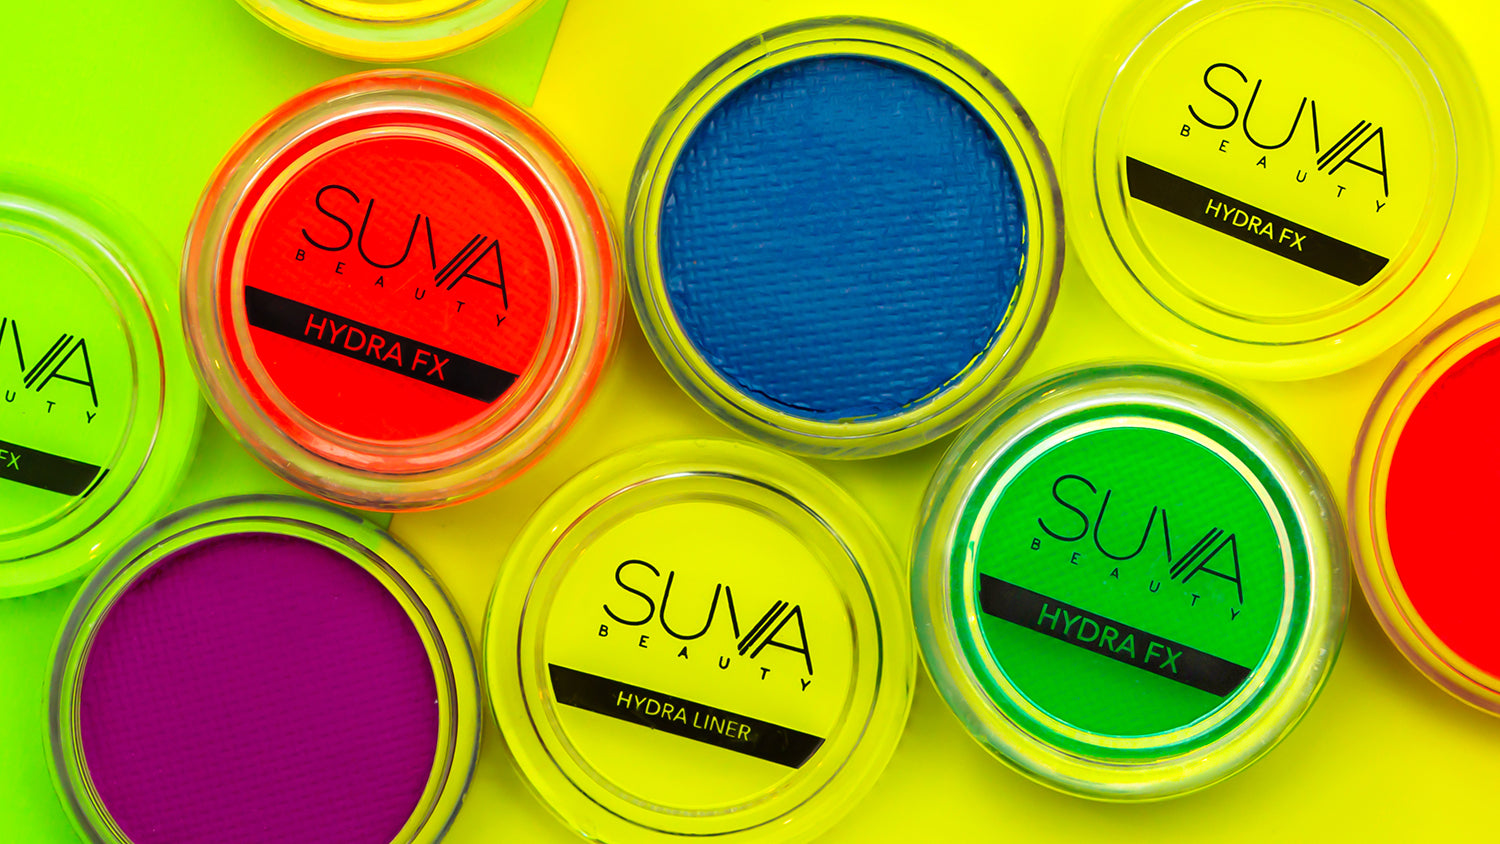 SUVA Beauty Hydra Liners and Hydra FX Apply without Cracking